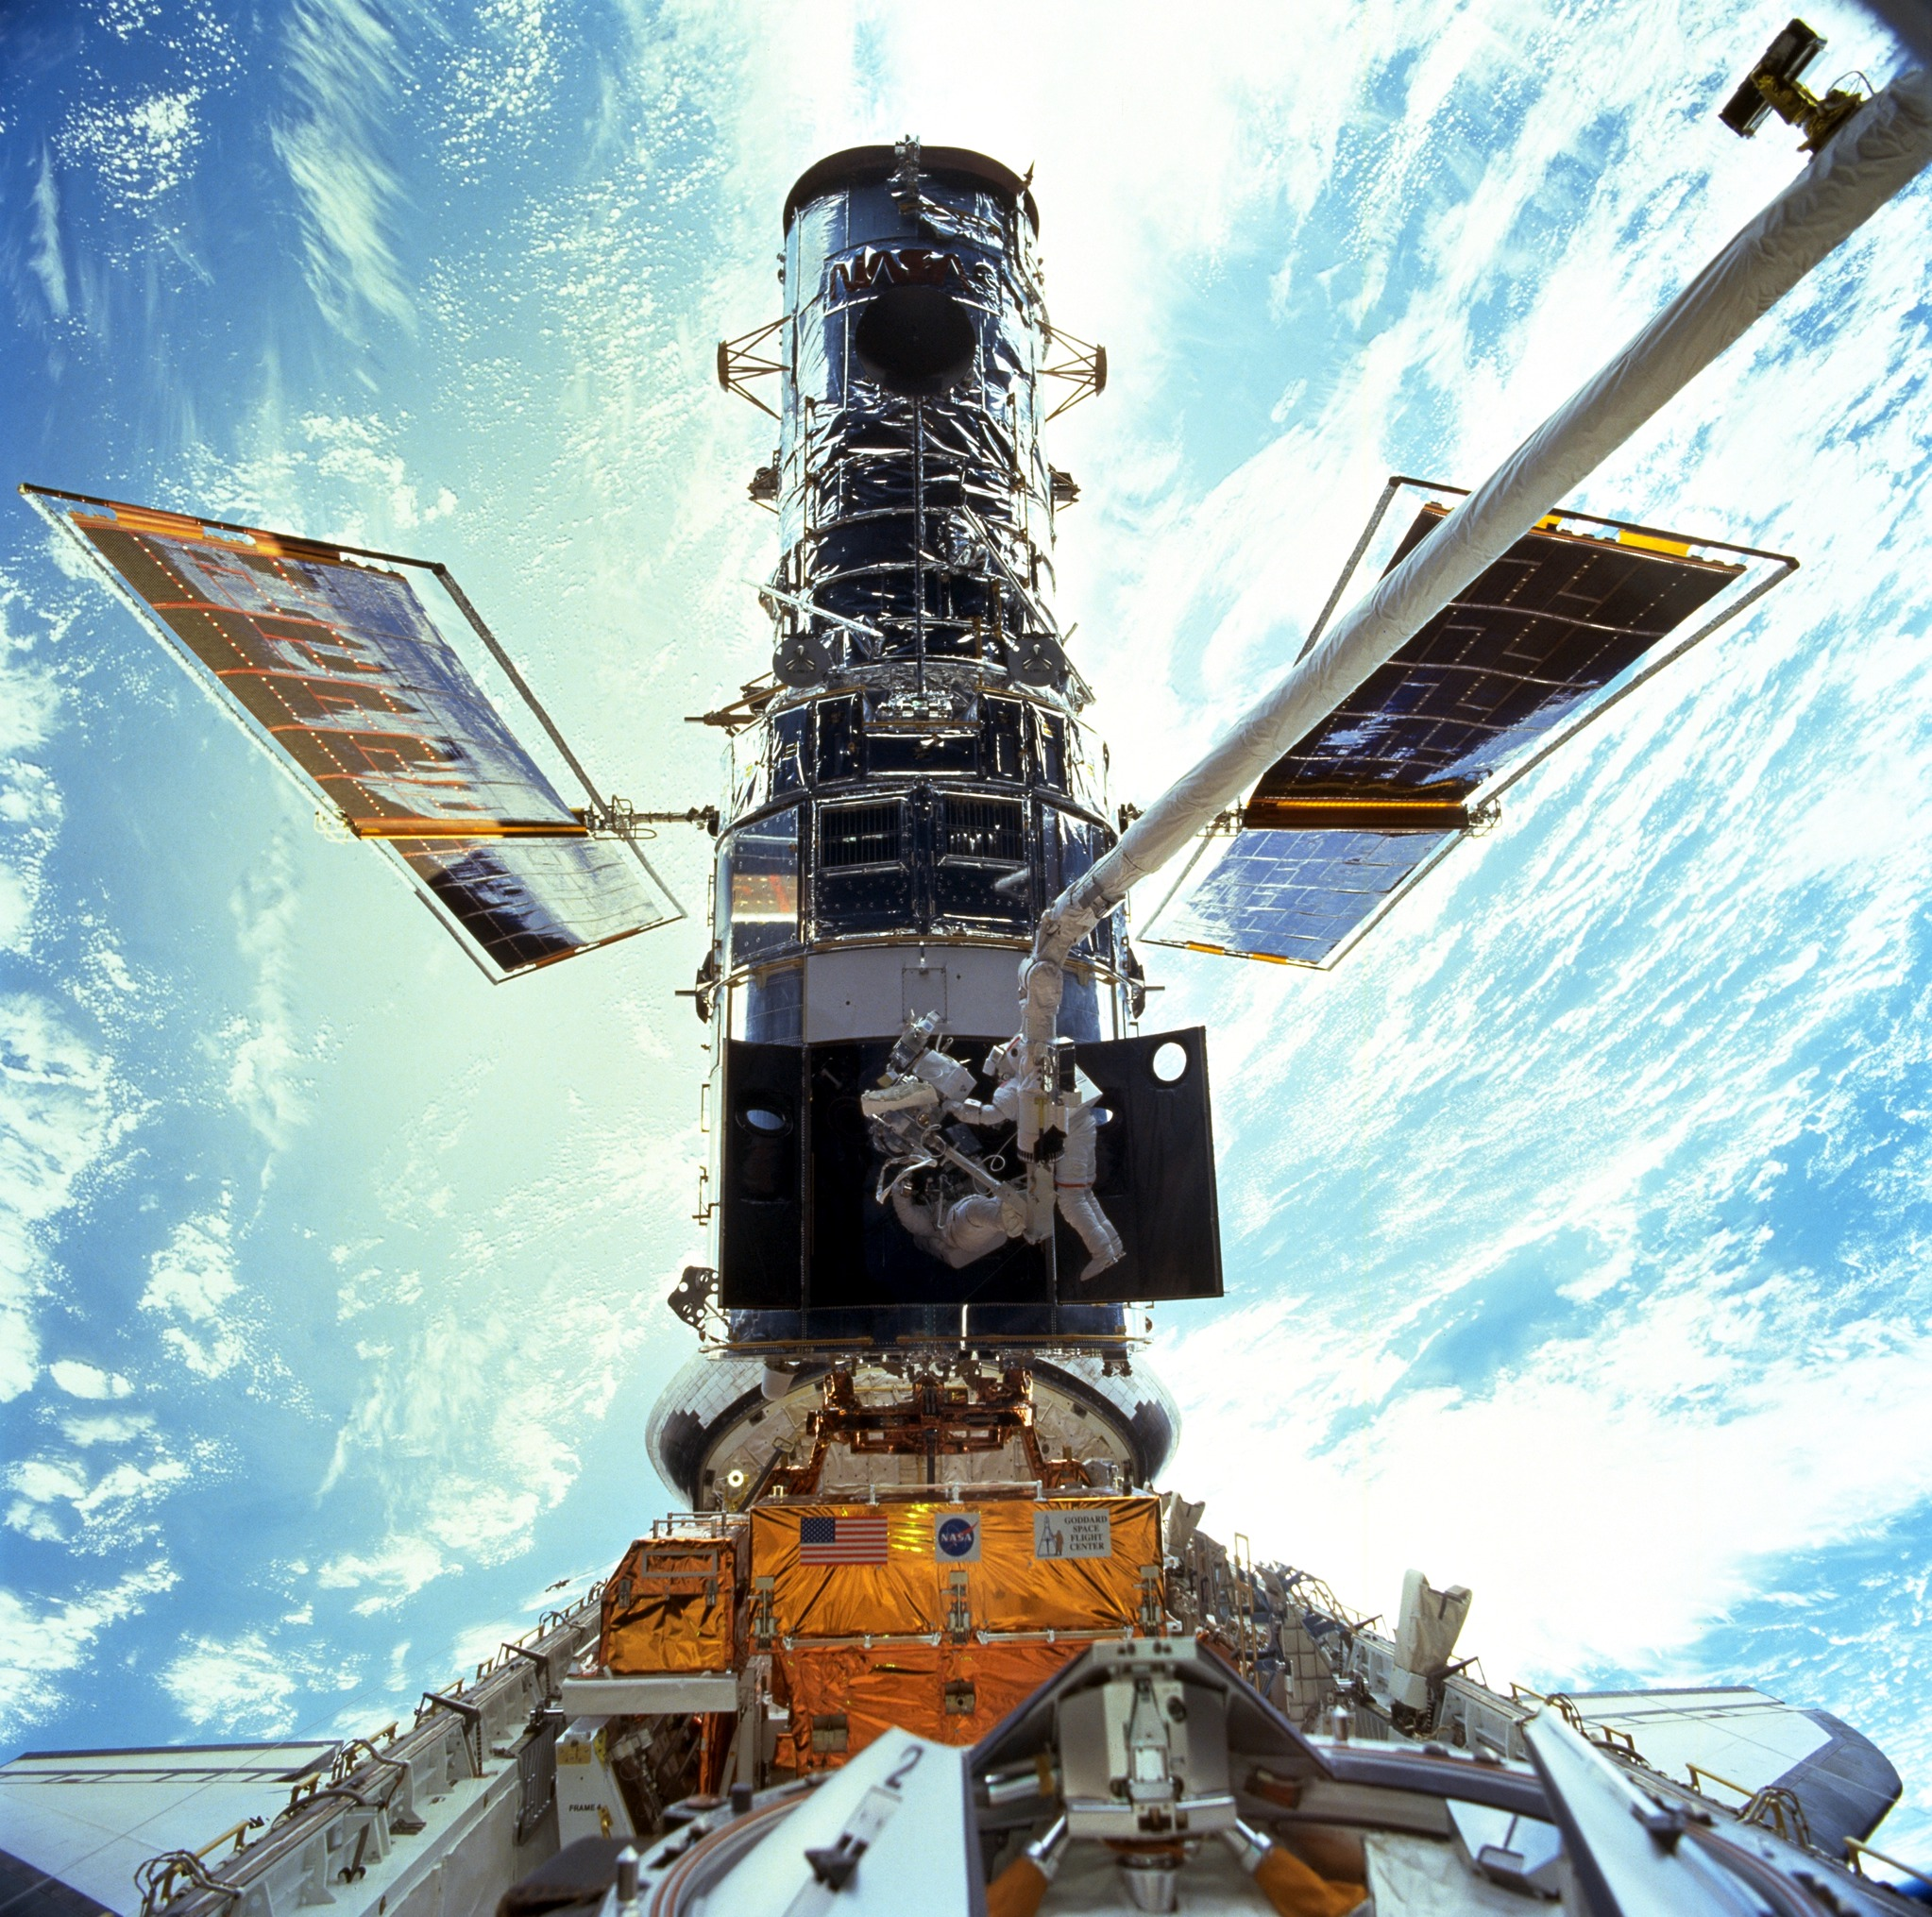 What has Hubble achieved?